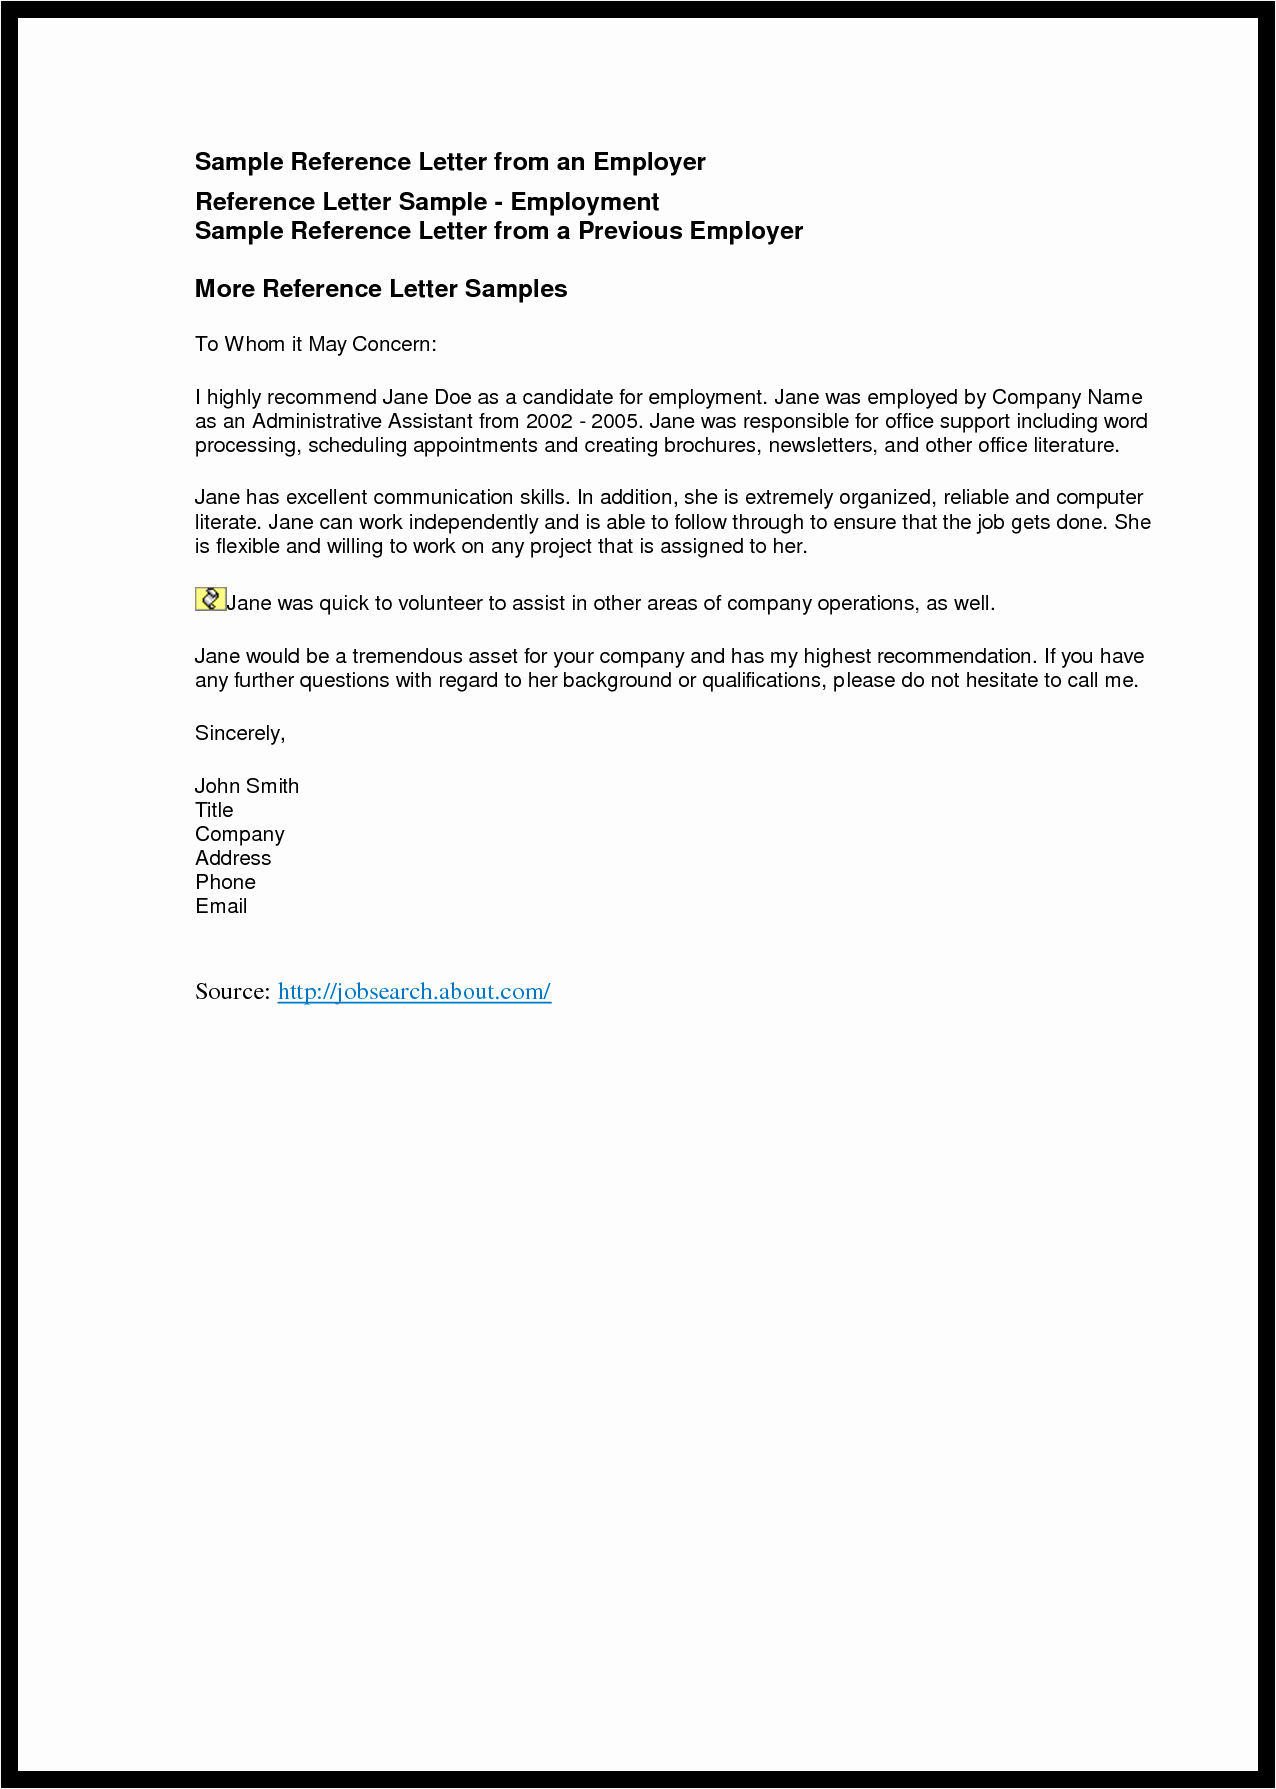 Letters Of Recommendation format Samples Inspirational Business Reference Letter Template Mughals